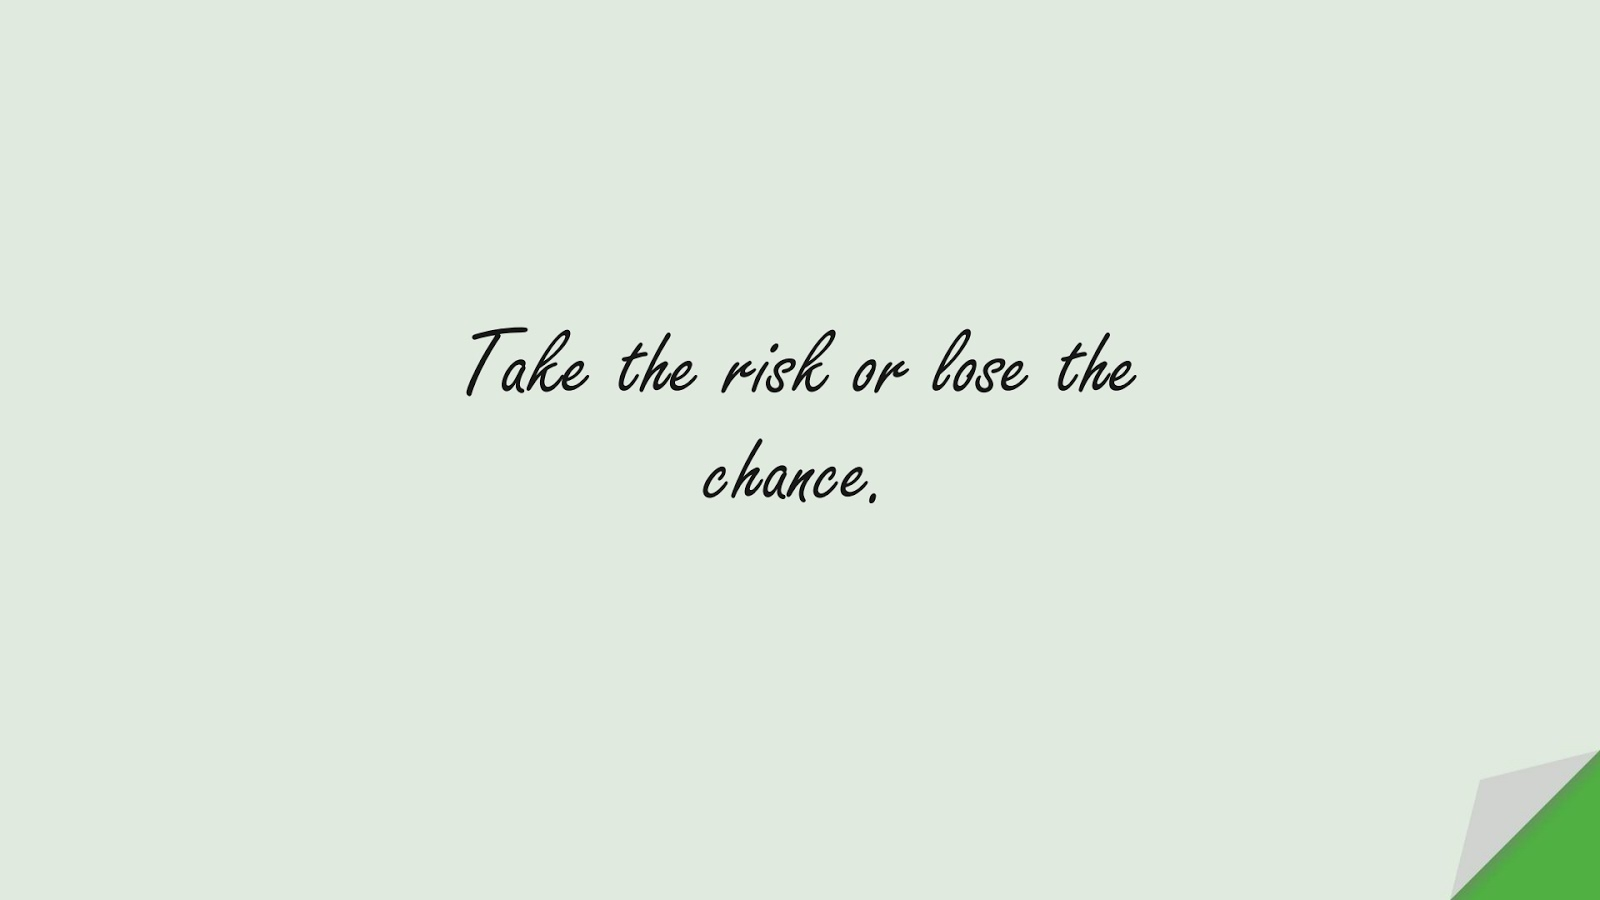 Take the risk or lose the chance.FALSE